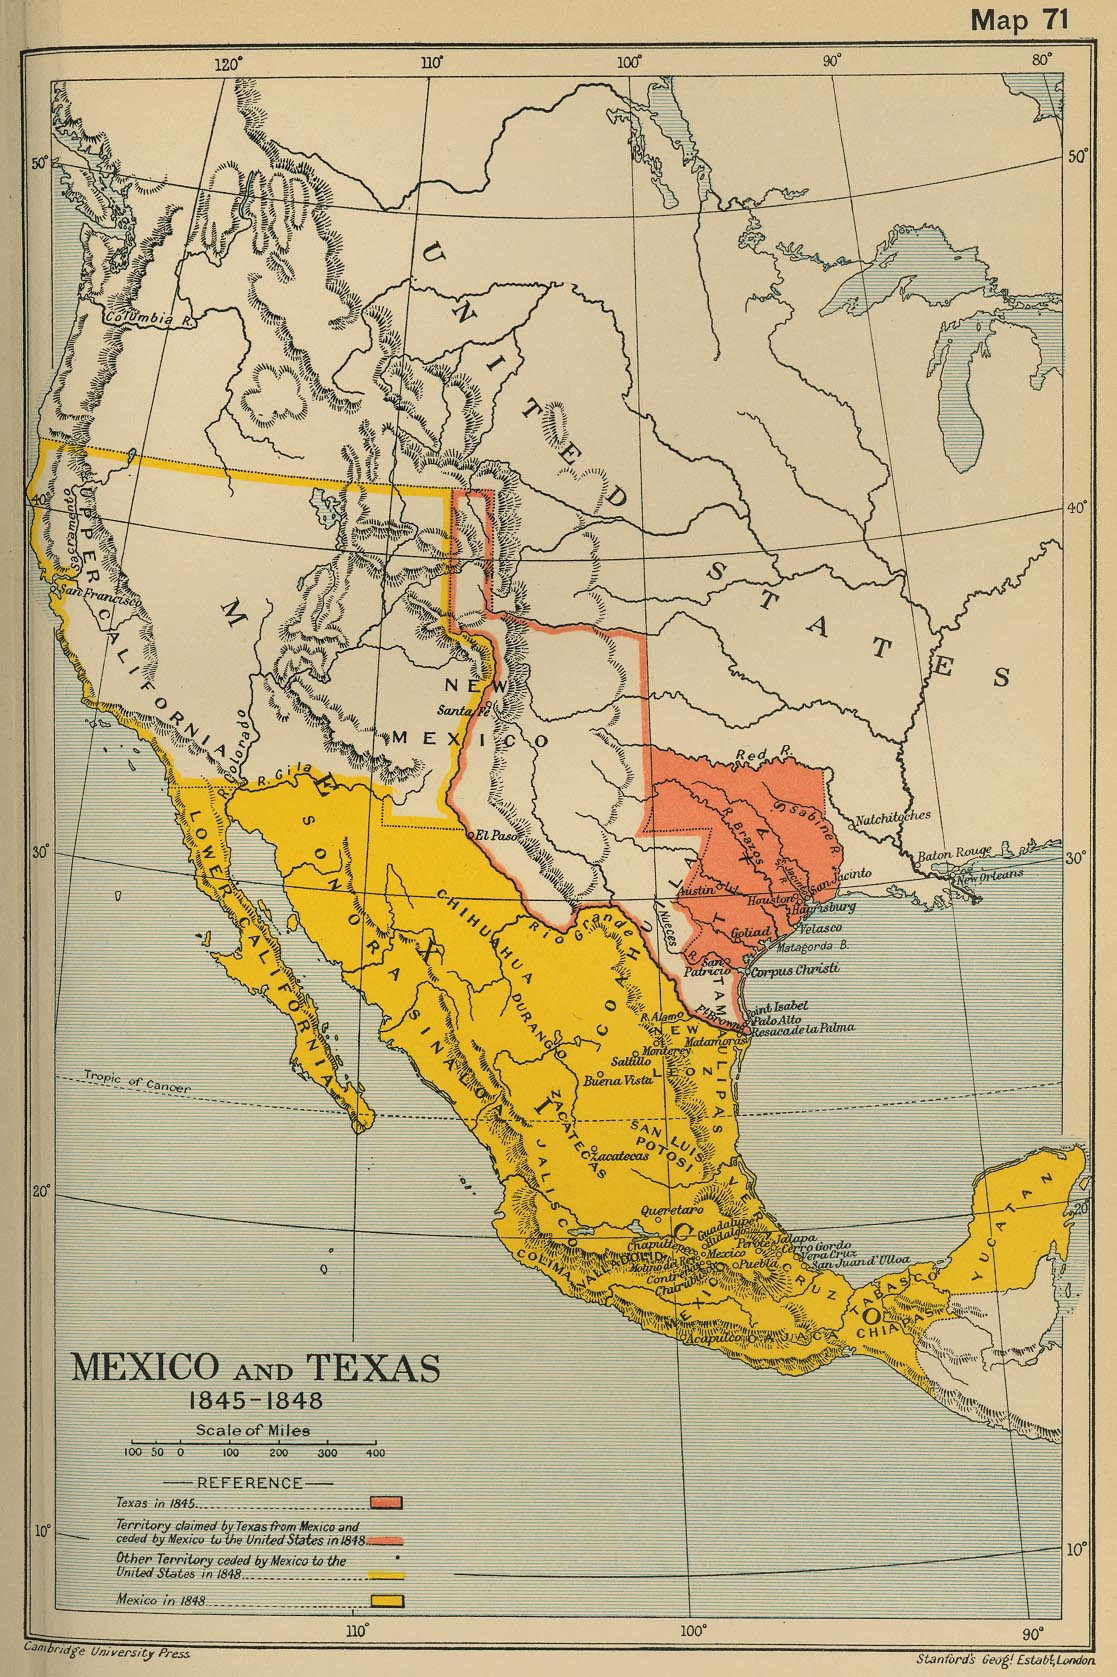 Map Of Mexico And Texas 1845-1848 - Rule Texas Map